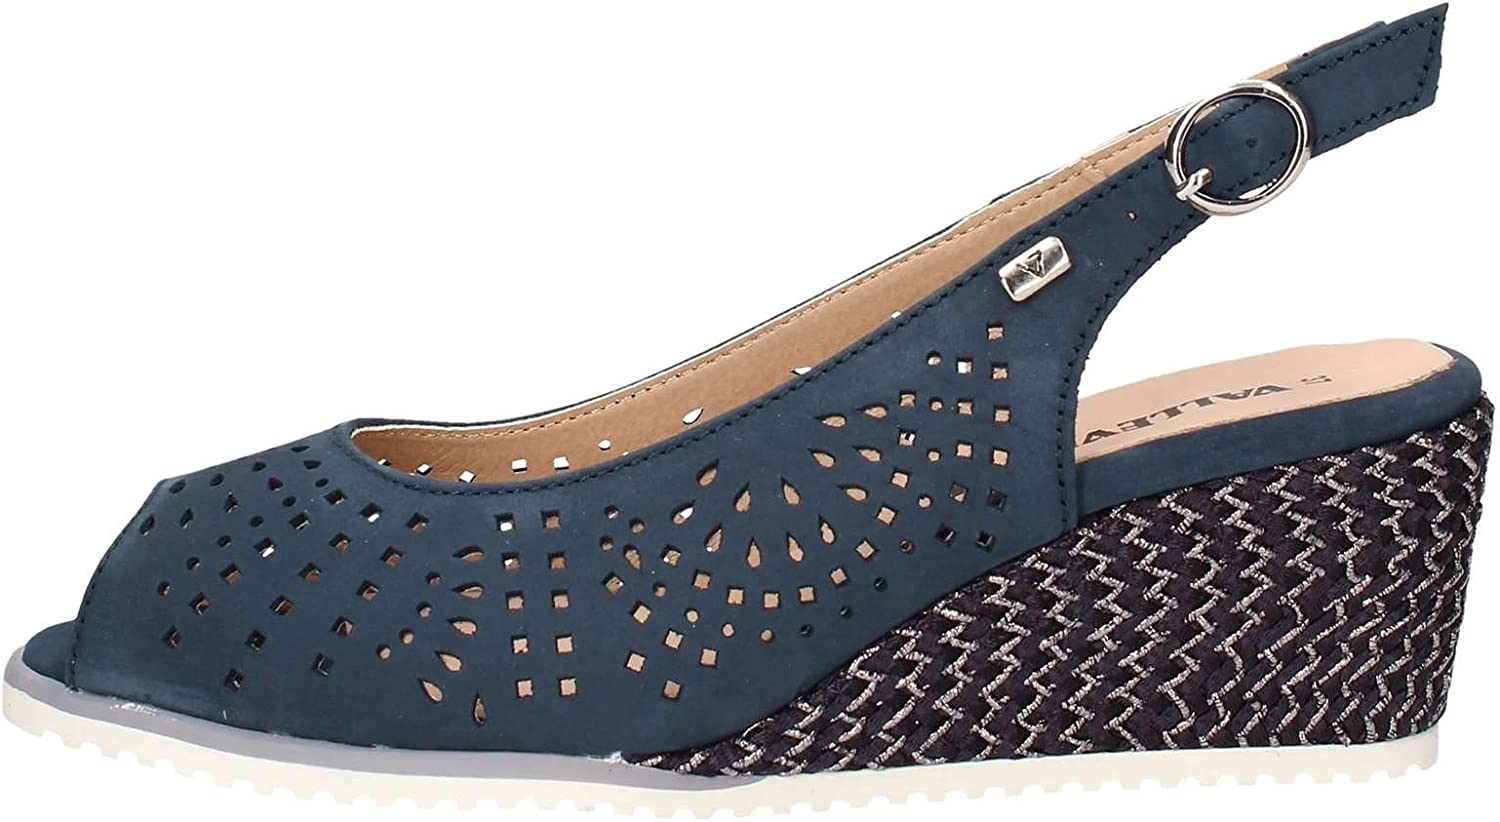 Vallegreen 36202 Moccasin Sandals bluee Womens Leather Wedge shoes